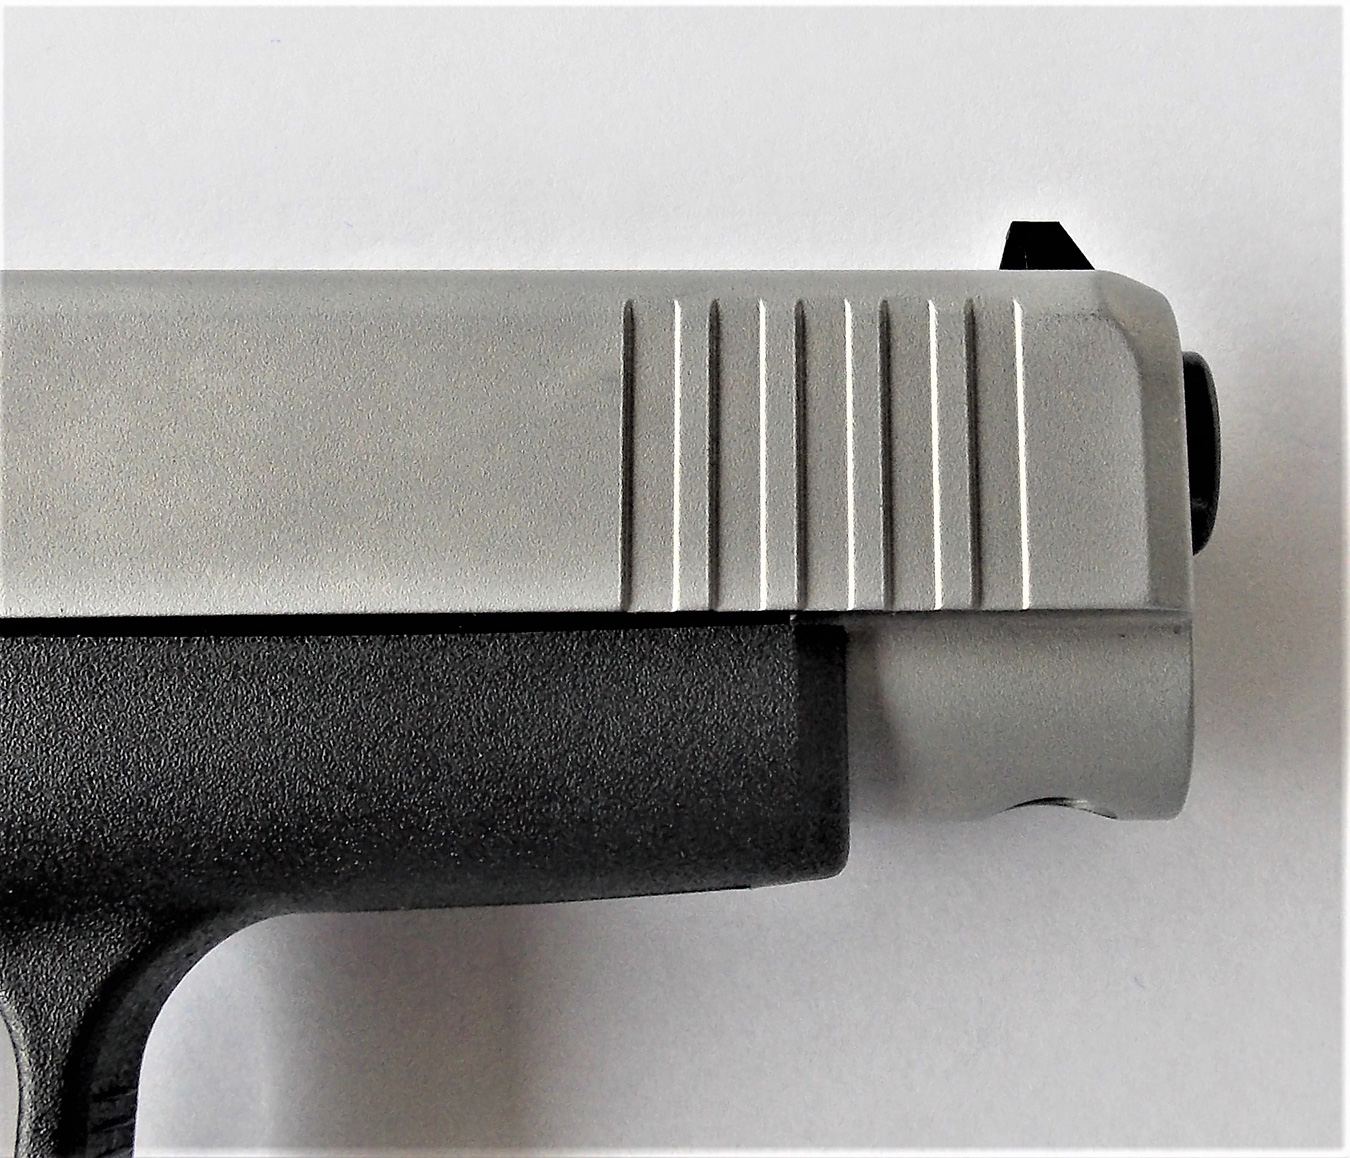 Review: Glock 48 9mm - The K-Var Armory